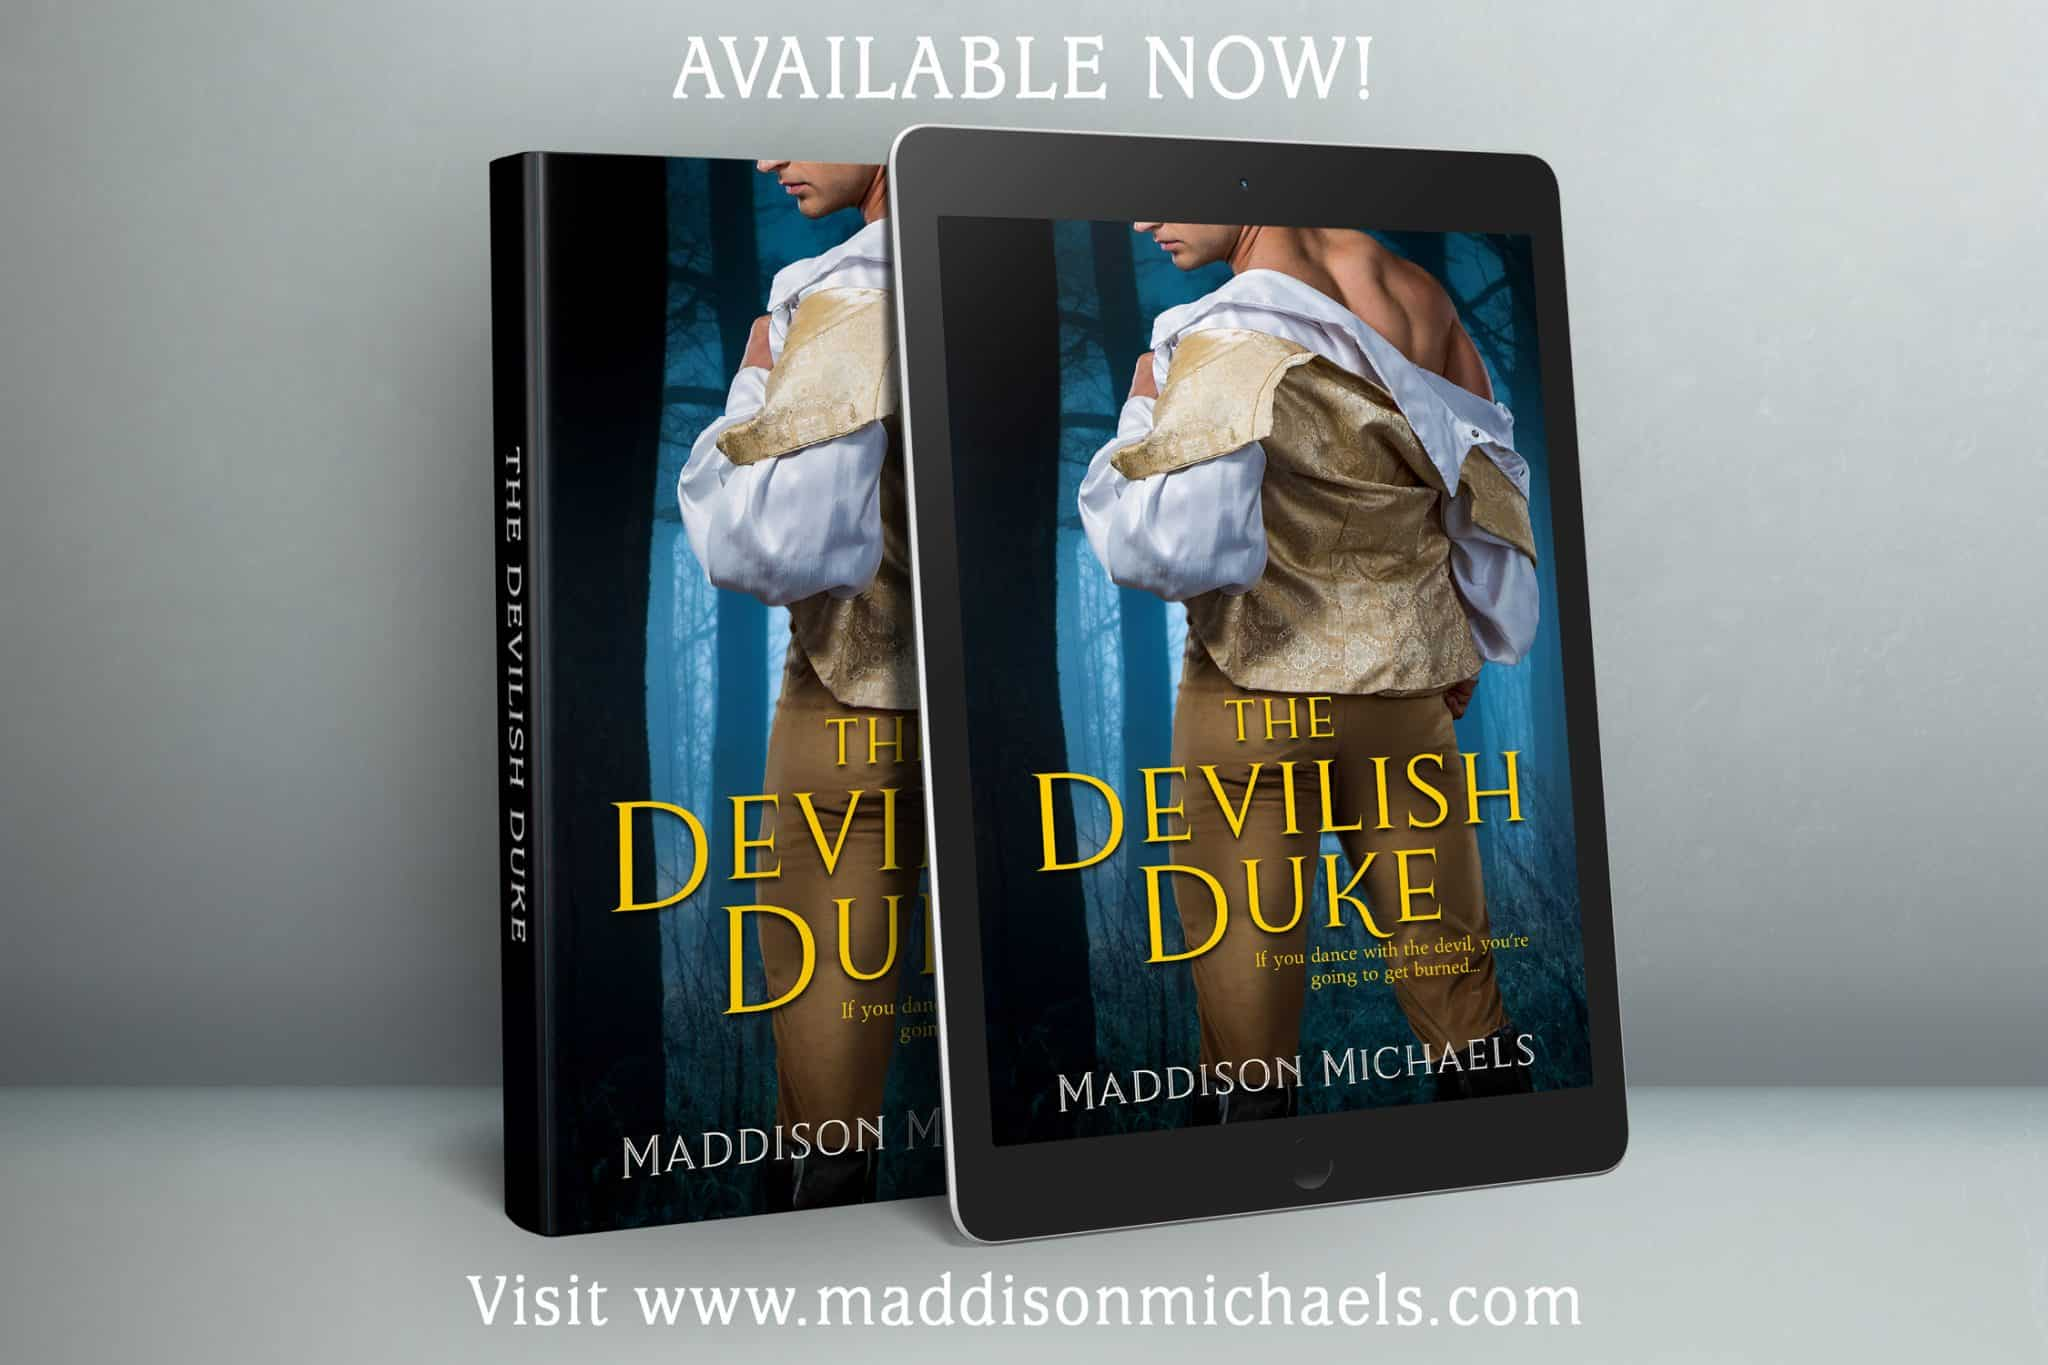 Whoo Hoo! The Devilish Duke is Available!!